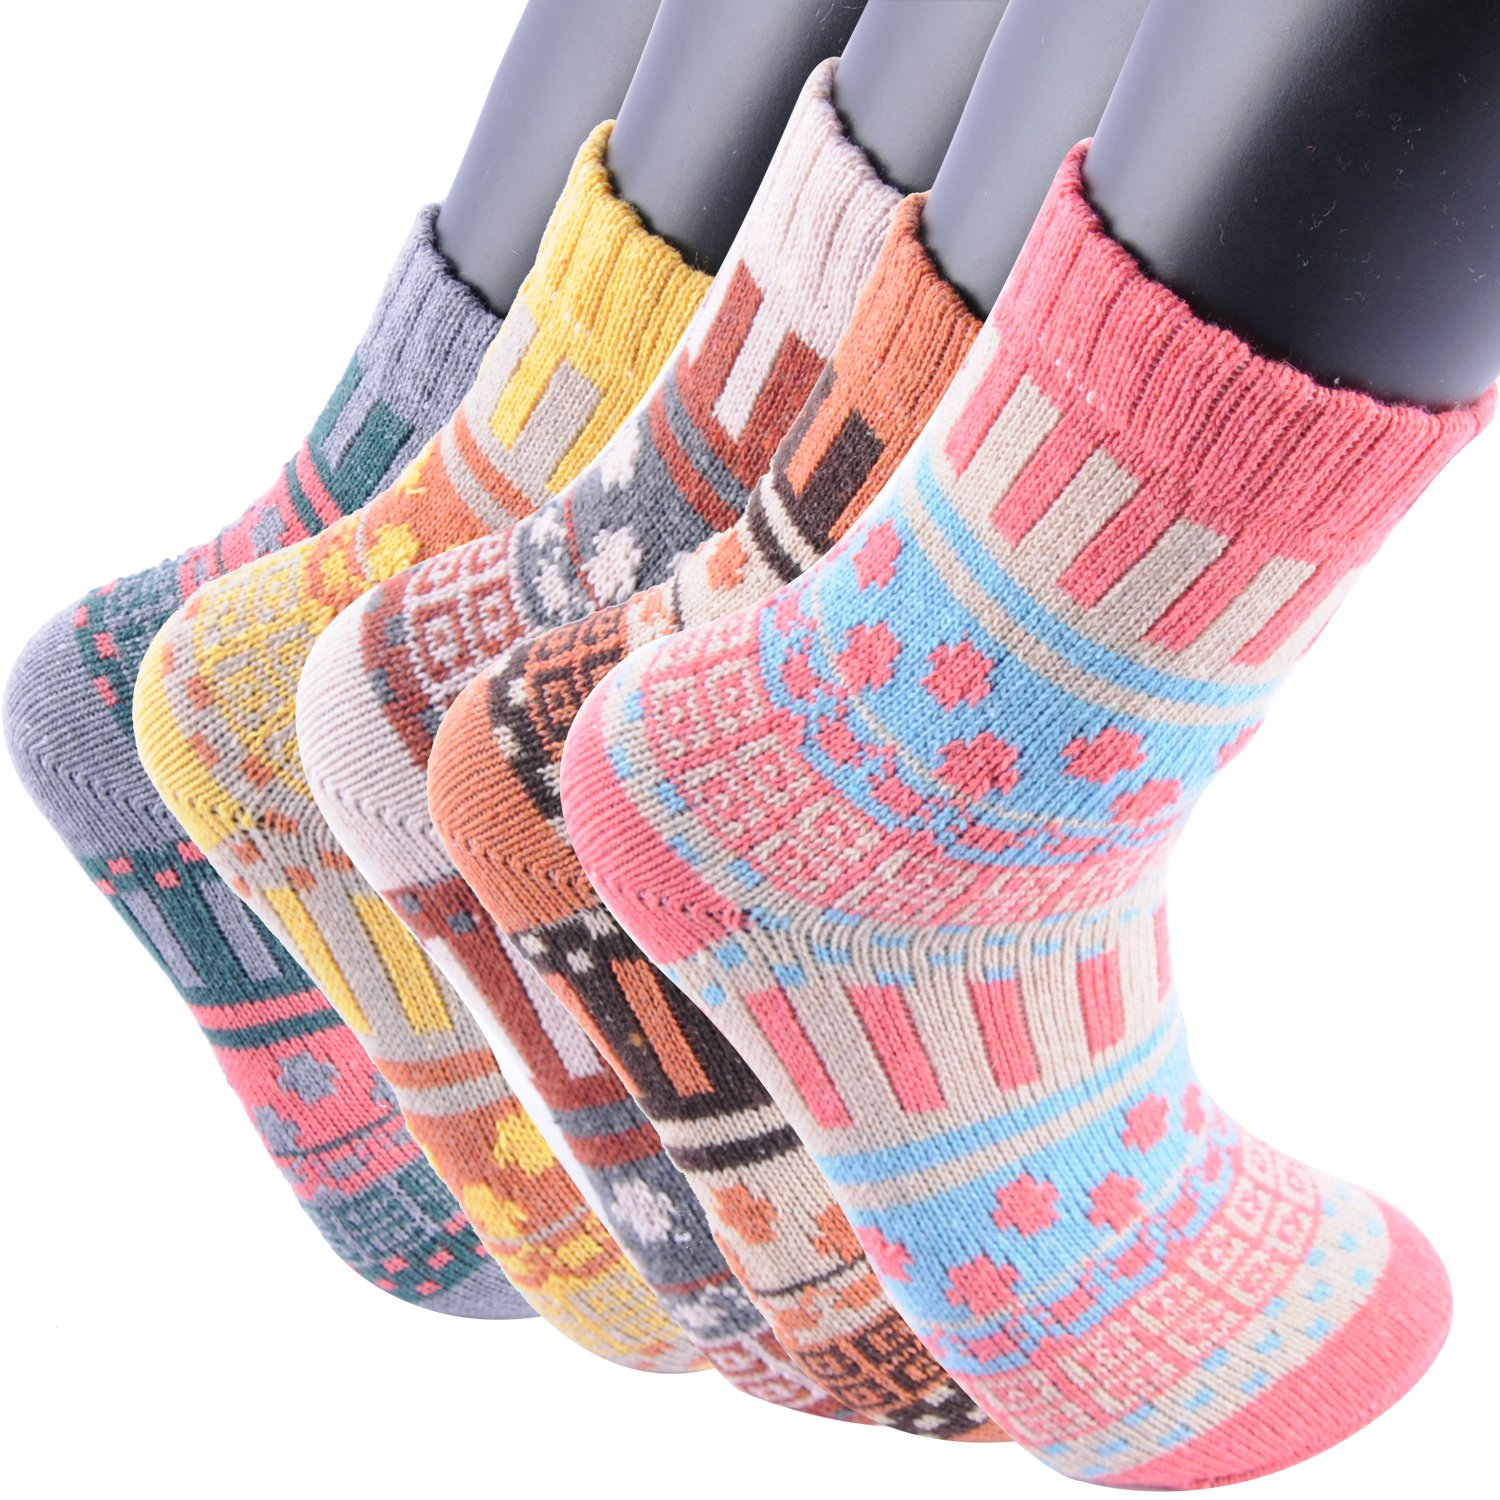 Areke Womens Vintage Soft Warm Thick Wool Cozy Crazy Novelty Socks, Winter Cold Knit Crew Socks 5 Pairs Color Multicolor 02-5Pack Size US Shoe Size 5-10